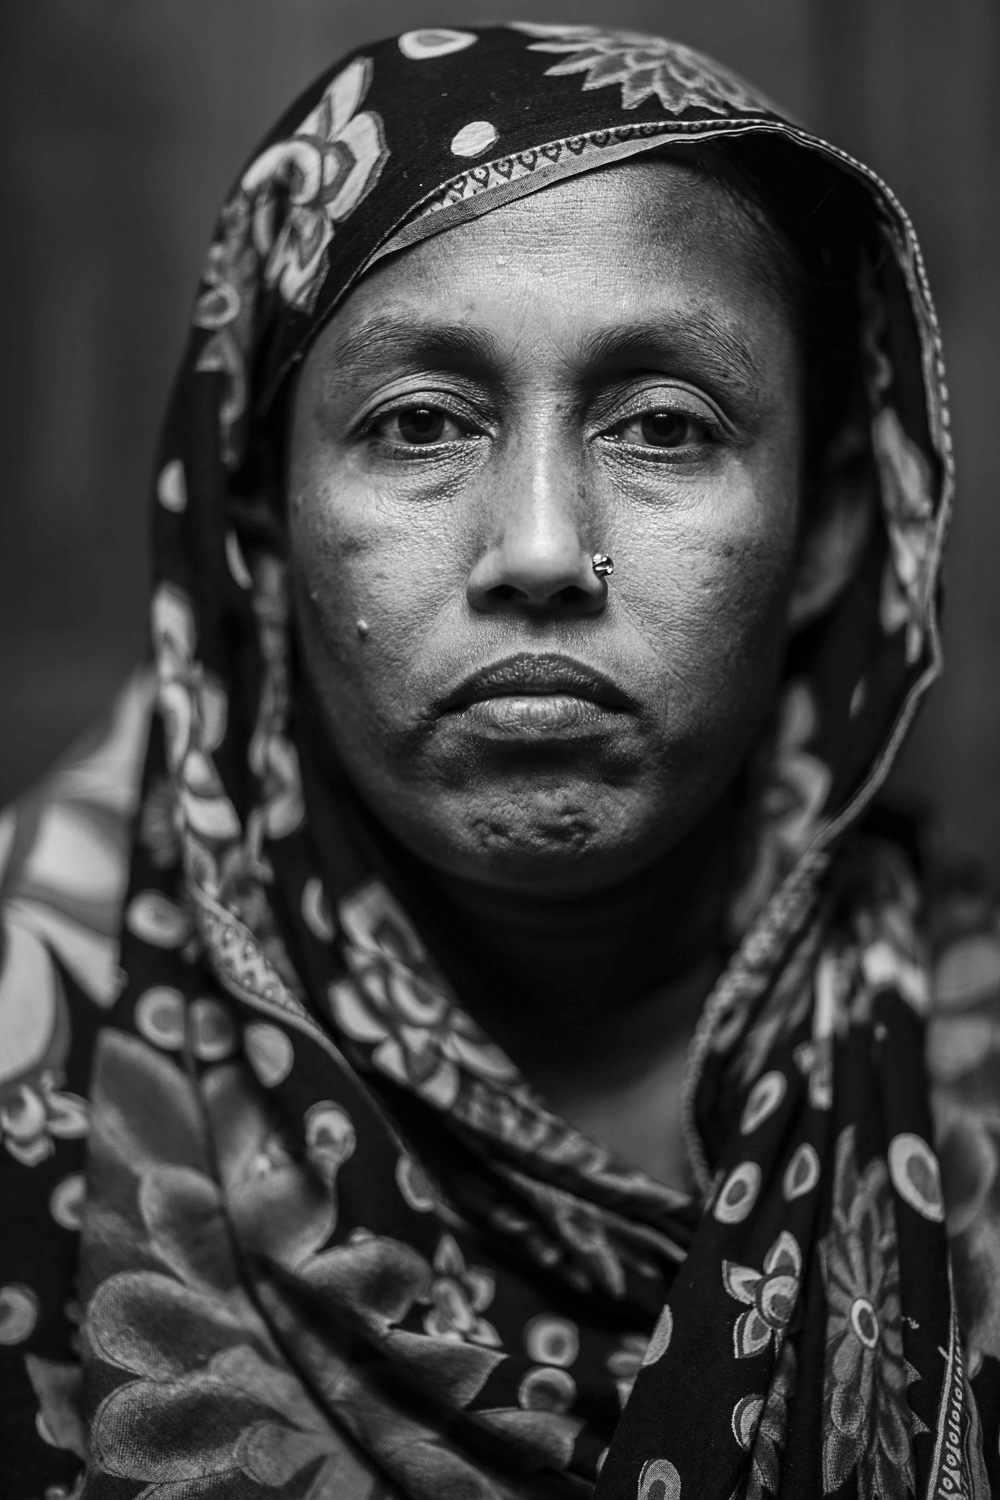 Nasima Begum, wife of Rubel, has been beside her husband's bed since November. They have two young sons in Comilla and are finding it hard to support their family.